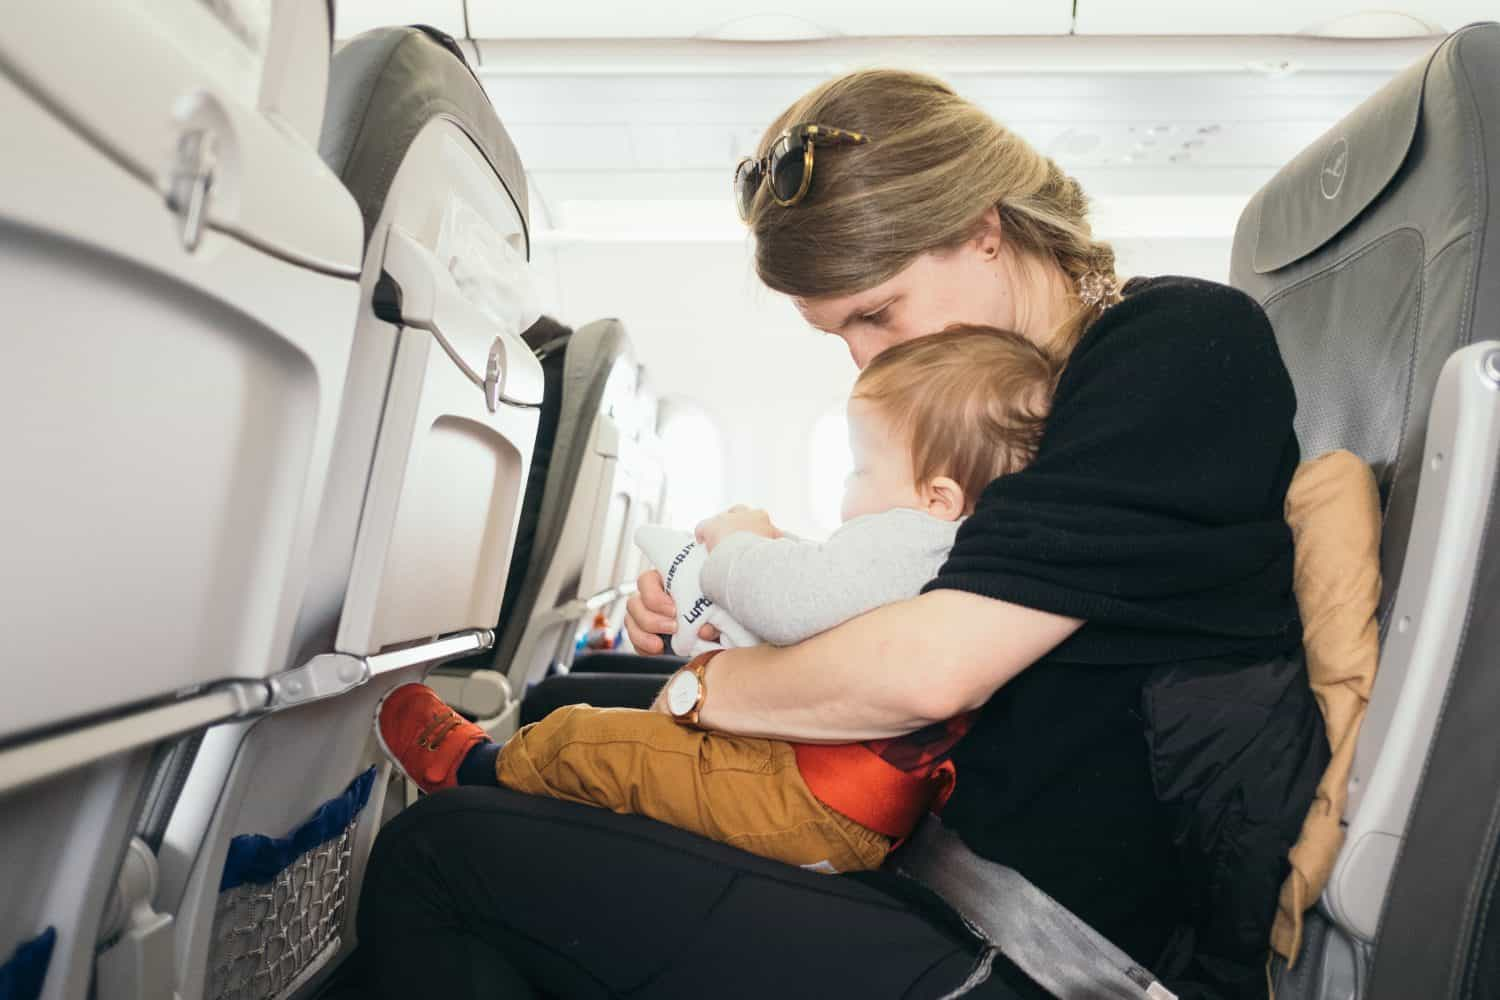 woman with baby on plane